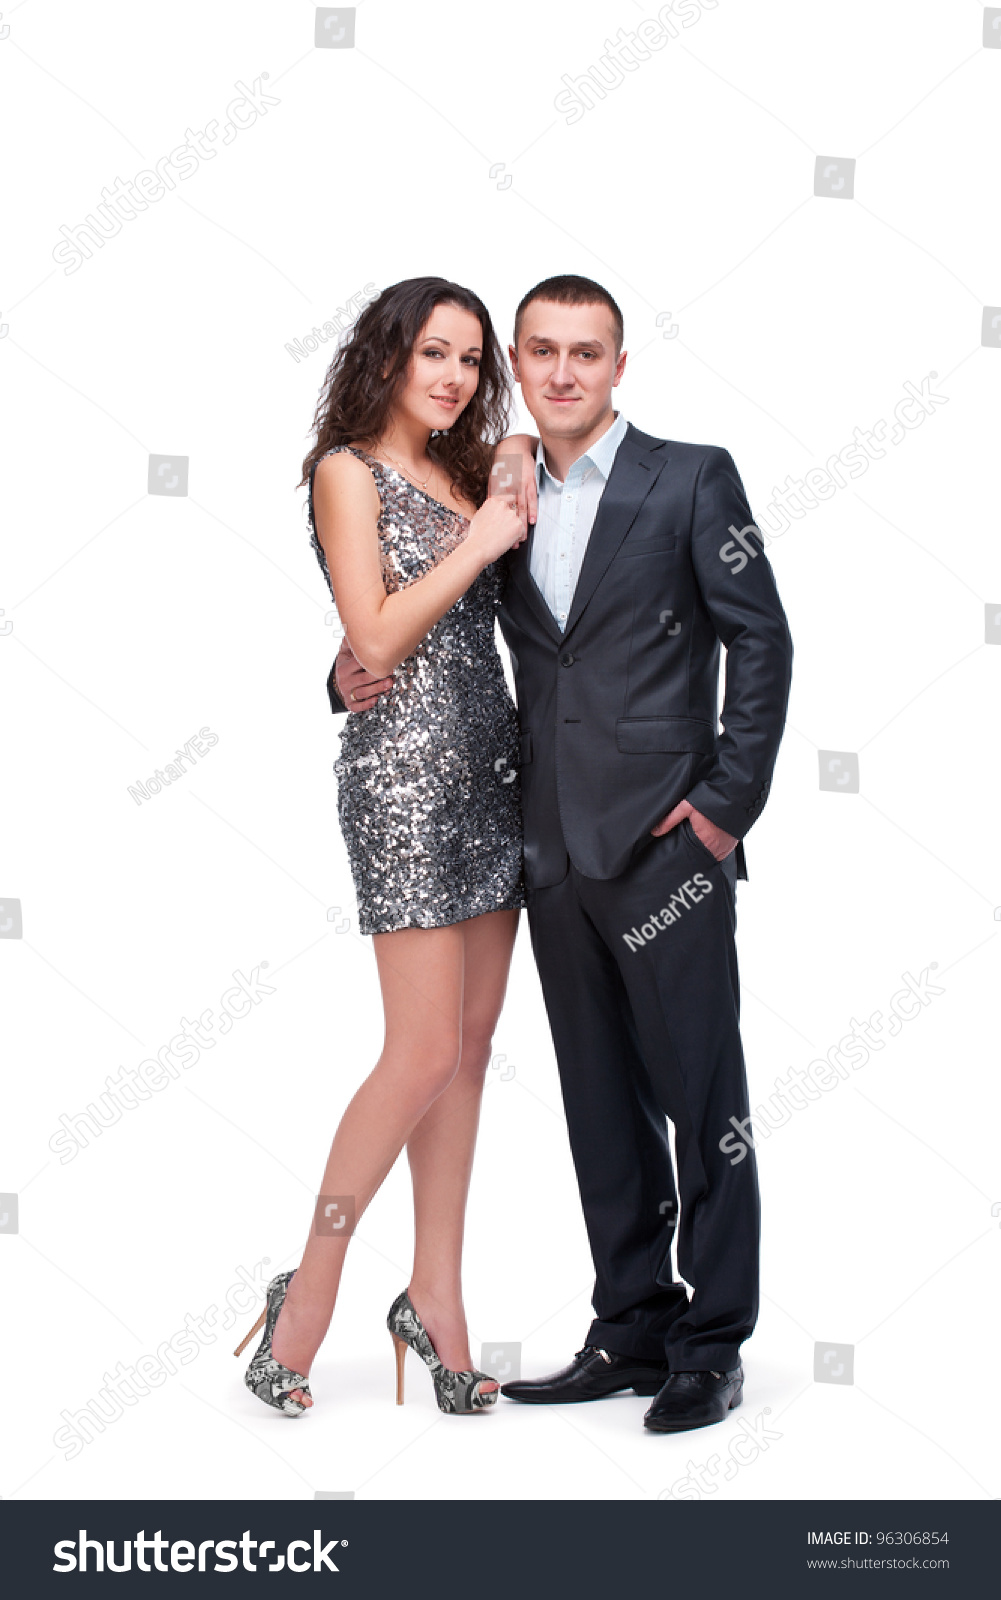 Young Couple Wear Evening Dress Suit Stock Photo 96306854 ...